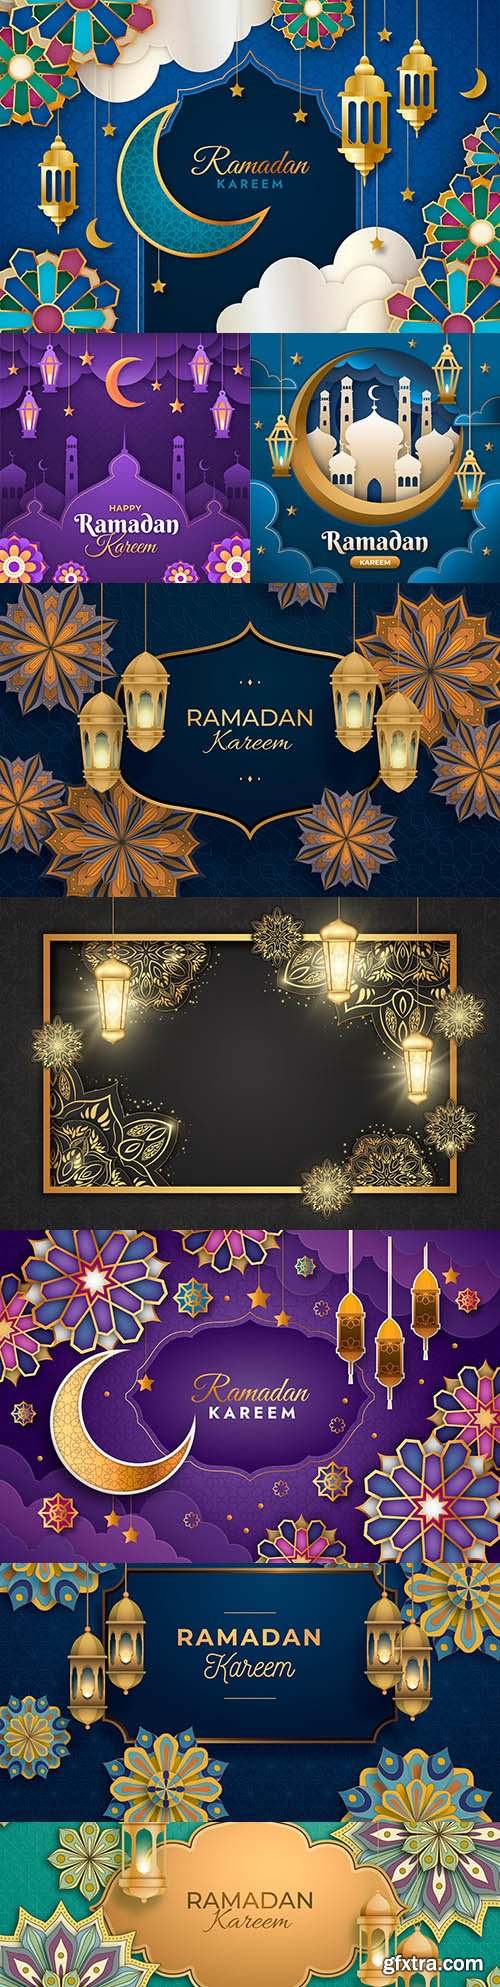 Ramadan Kareem background illustration in paper style